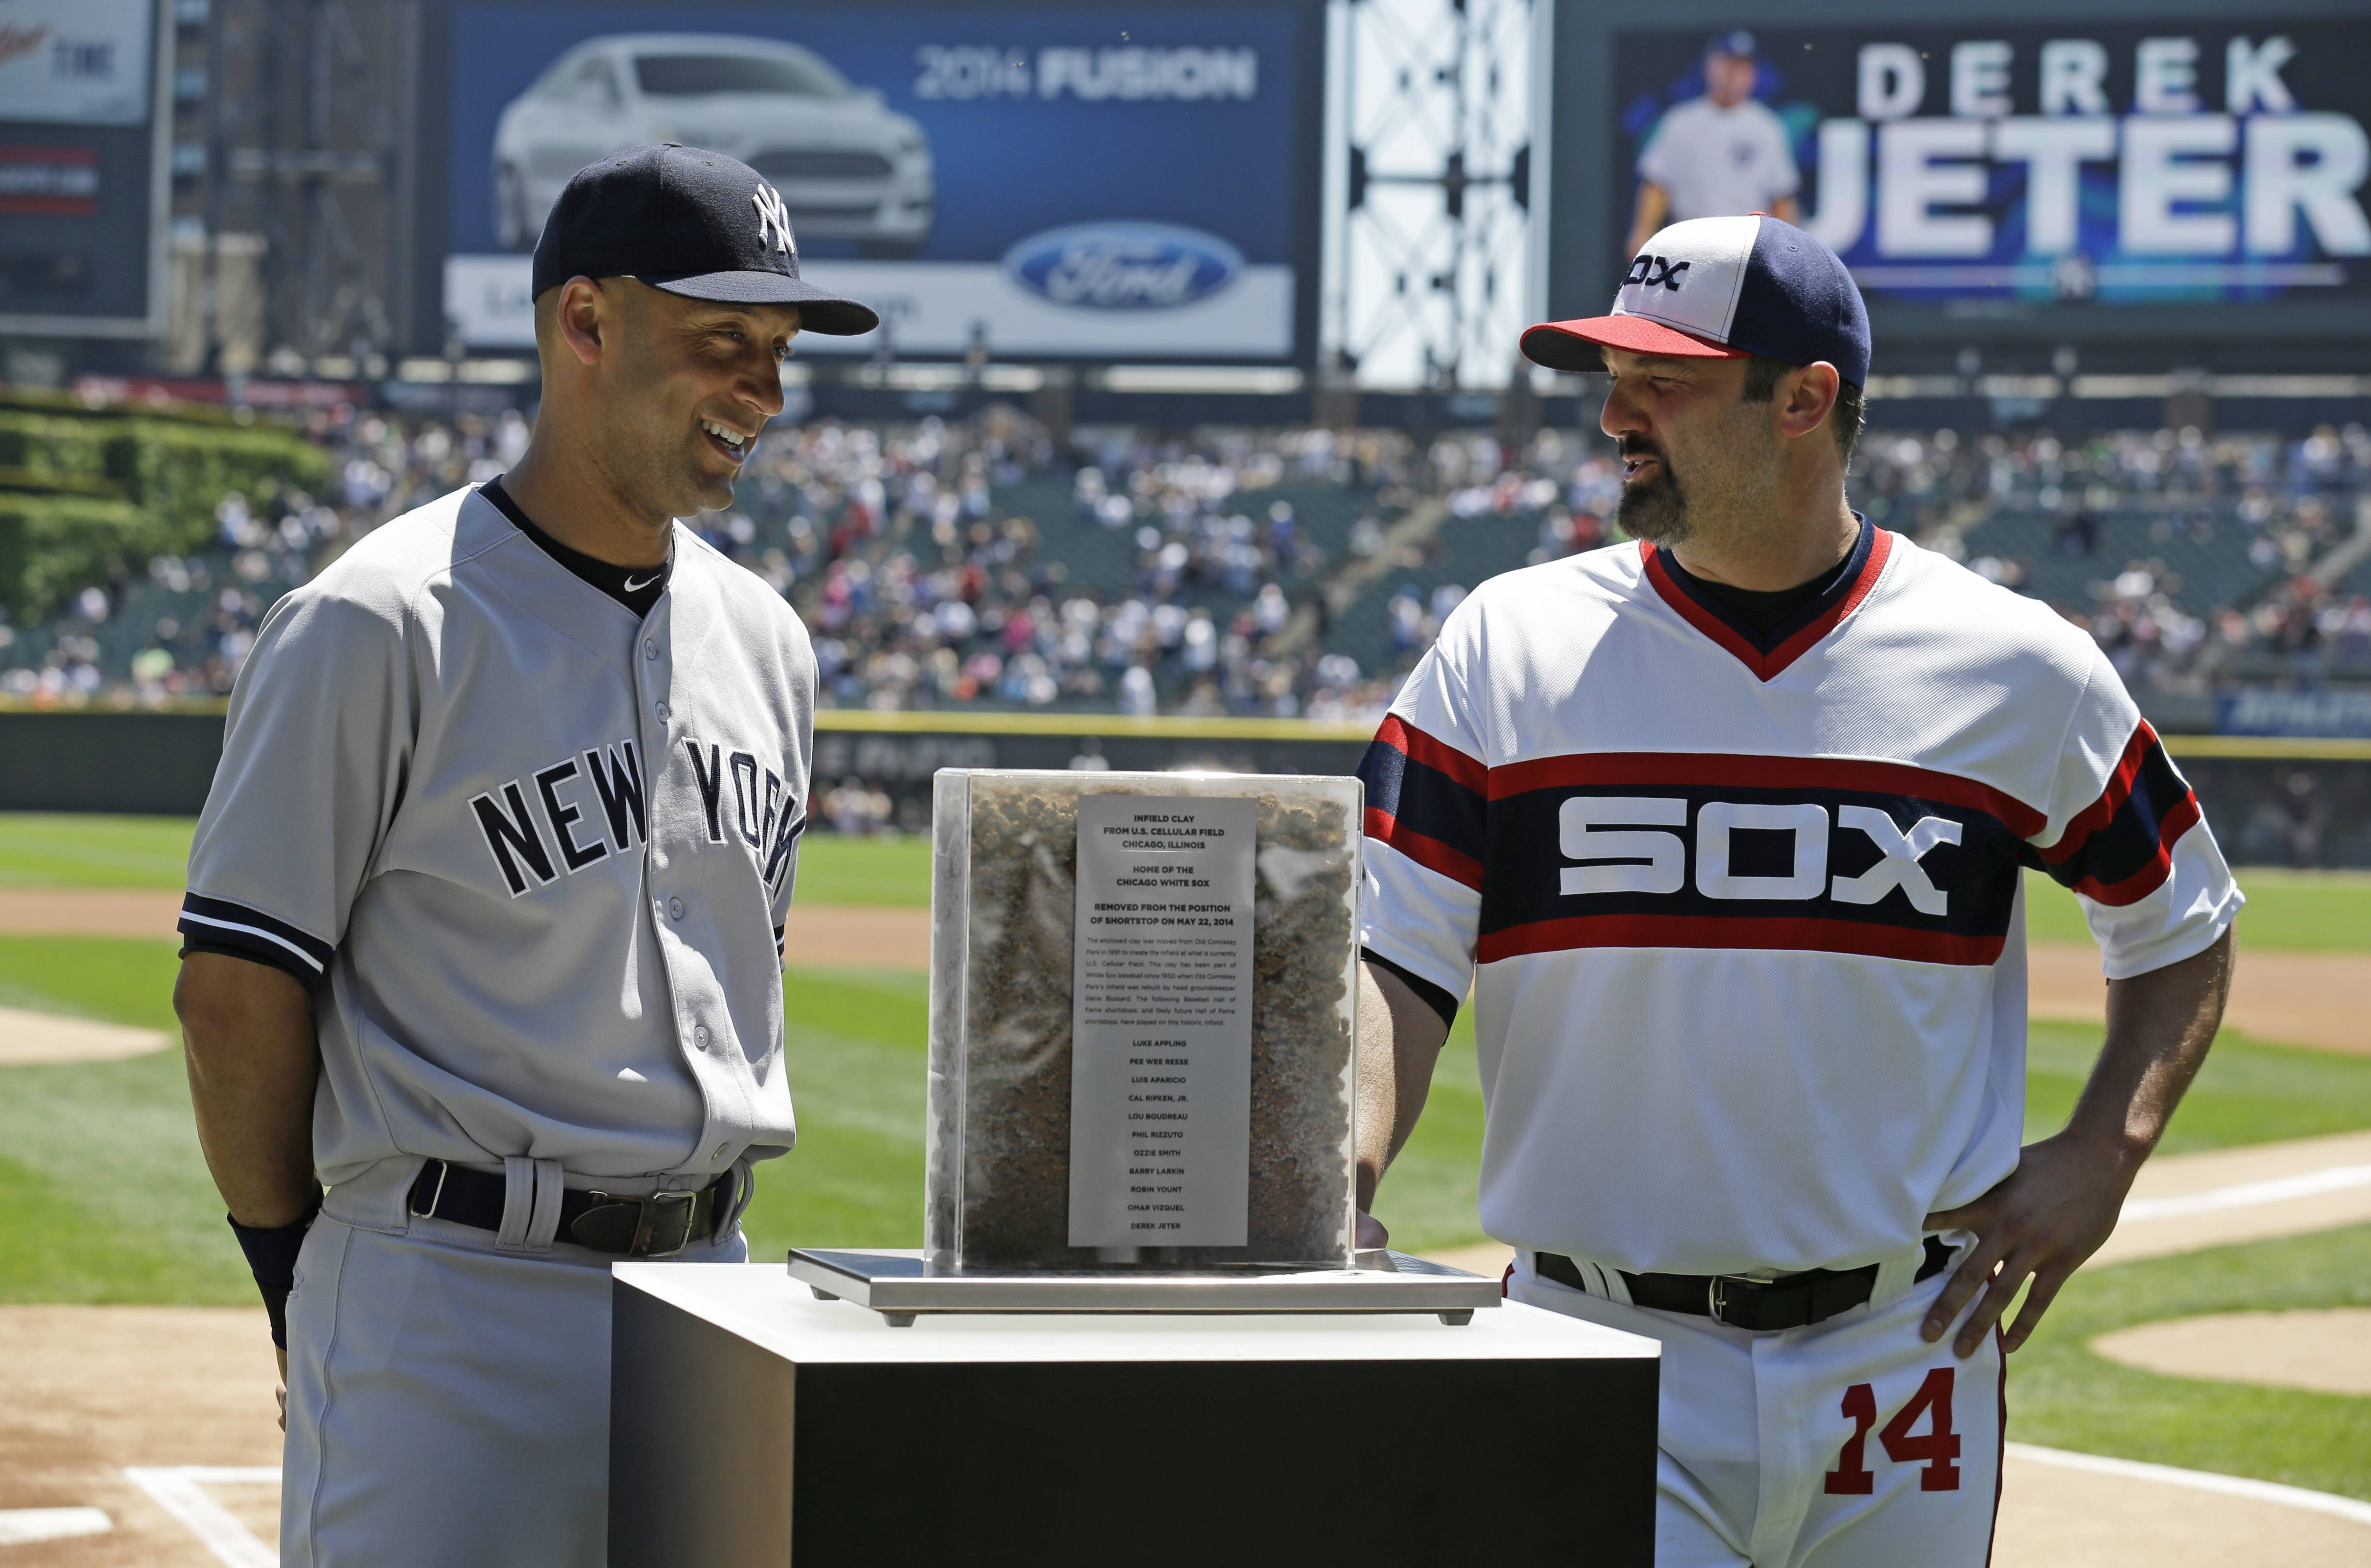 Sox honor Jeter, then he helps defeat them